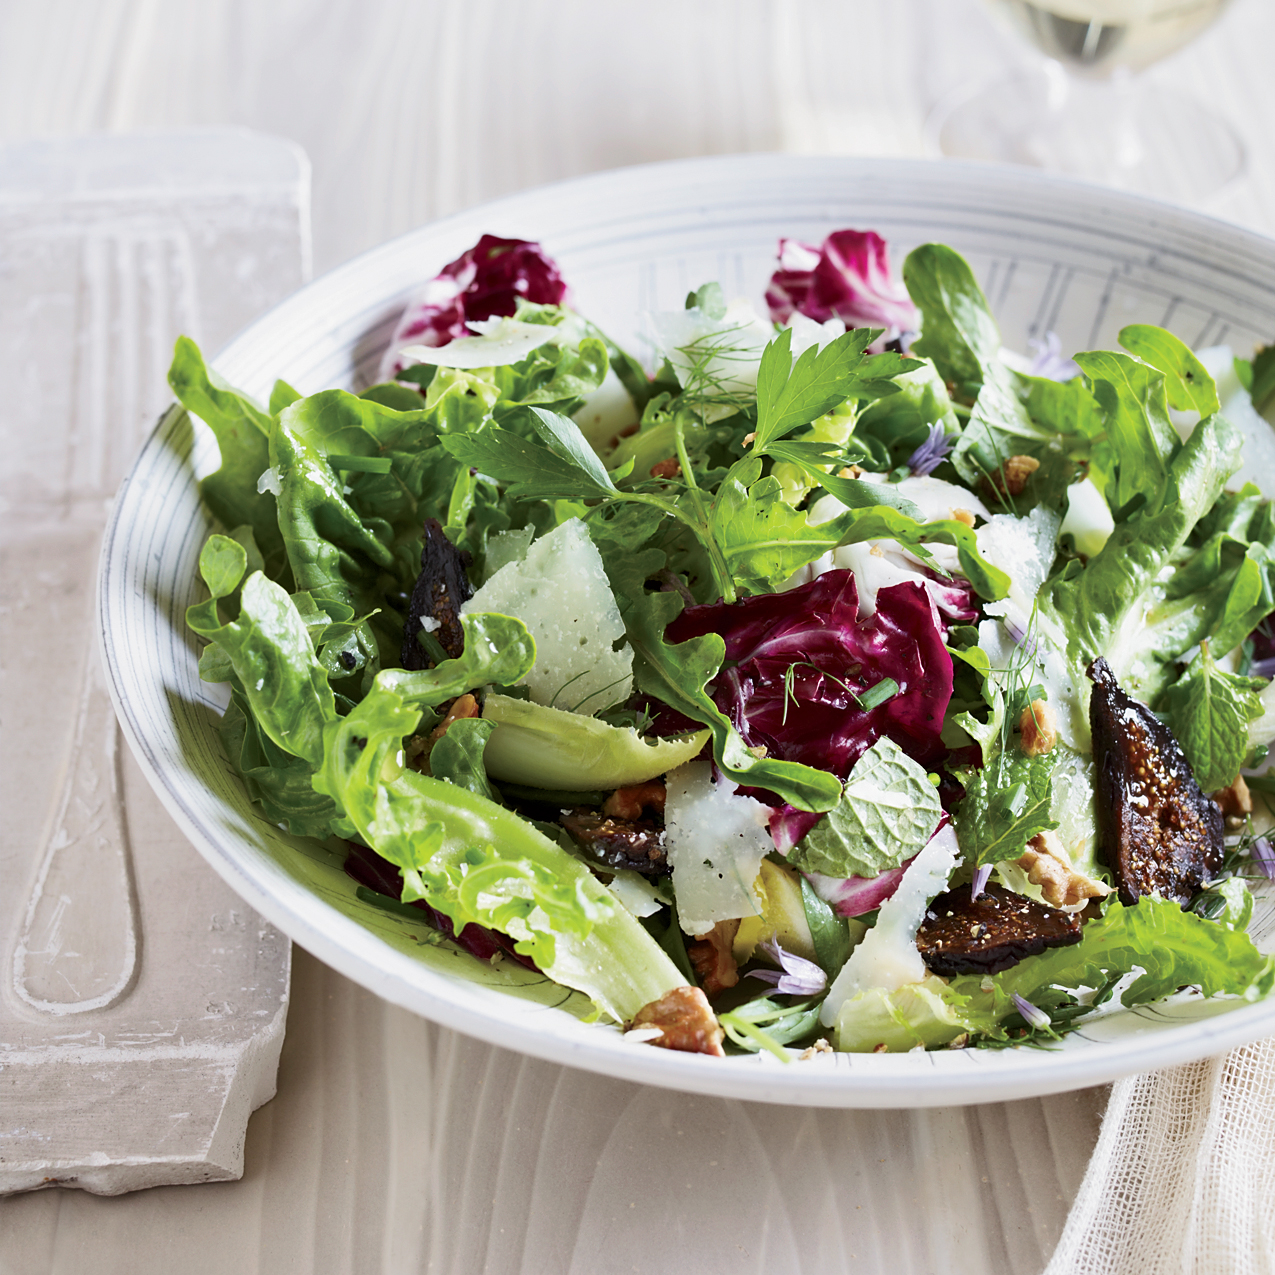 Mixed Greens And Herb Salad With Figs And Walnuts Recipe Jessica Theroux Food Wine